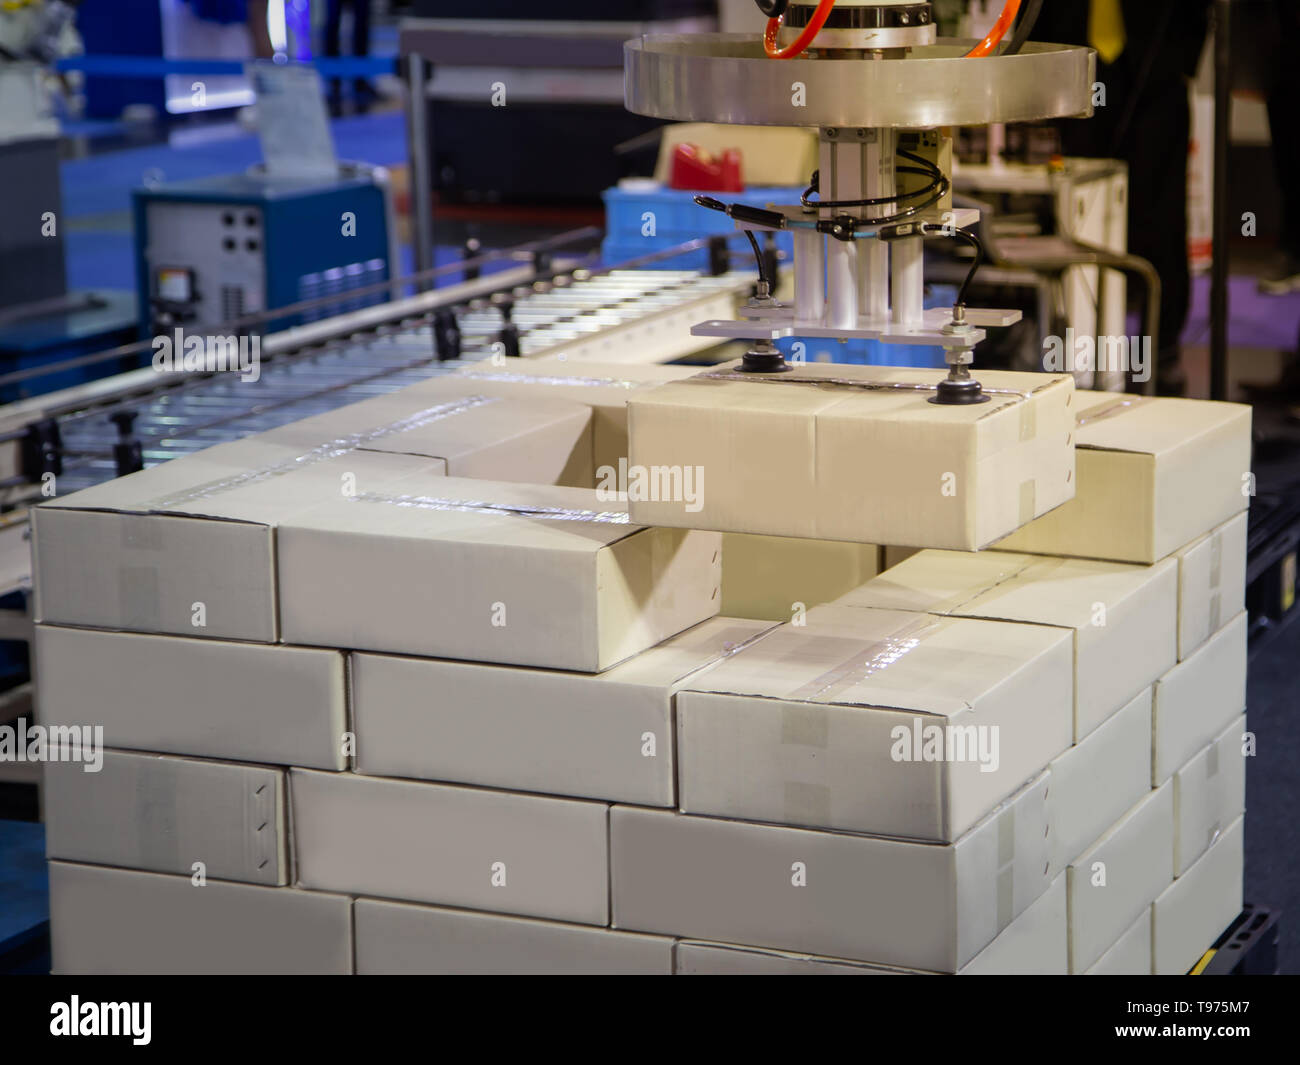 Robot arm loading carton on conveyor in manufacturing production line Stock Photo